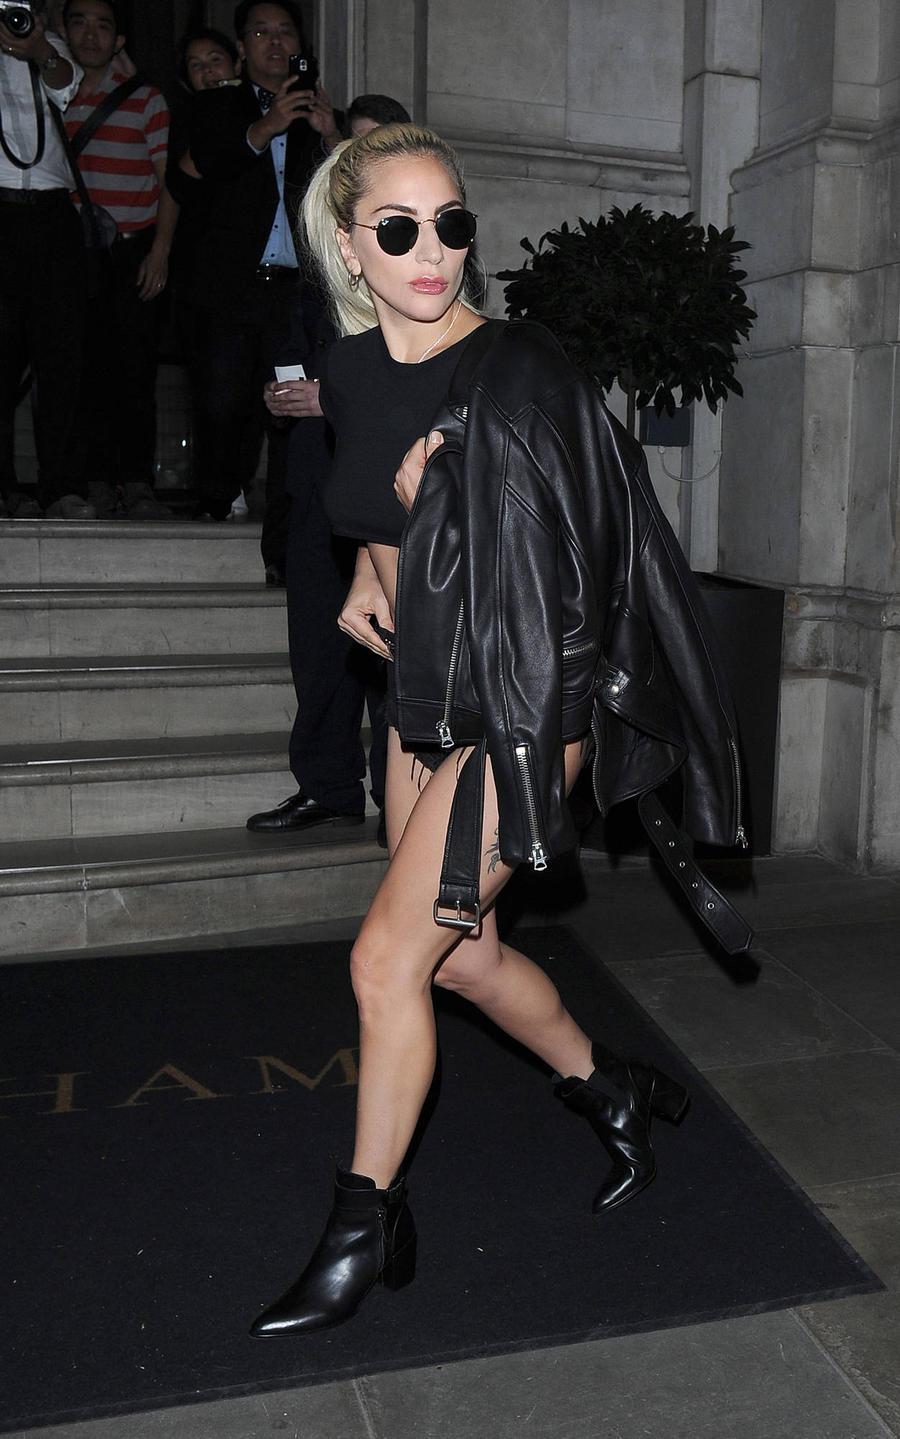 Lady Gaga Returns To Bar She First Performed In At 15